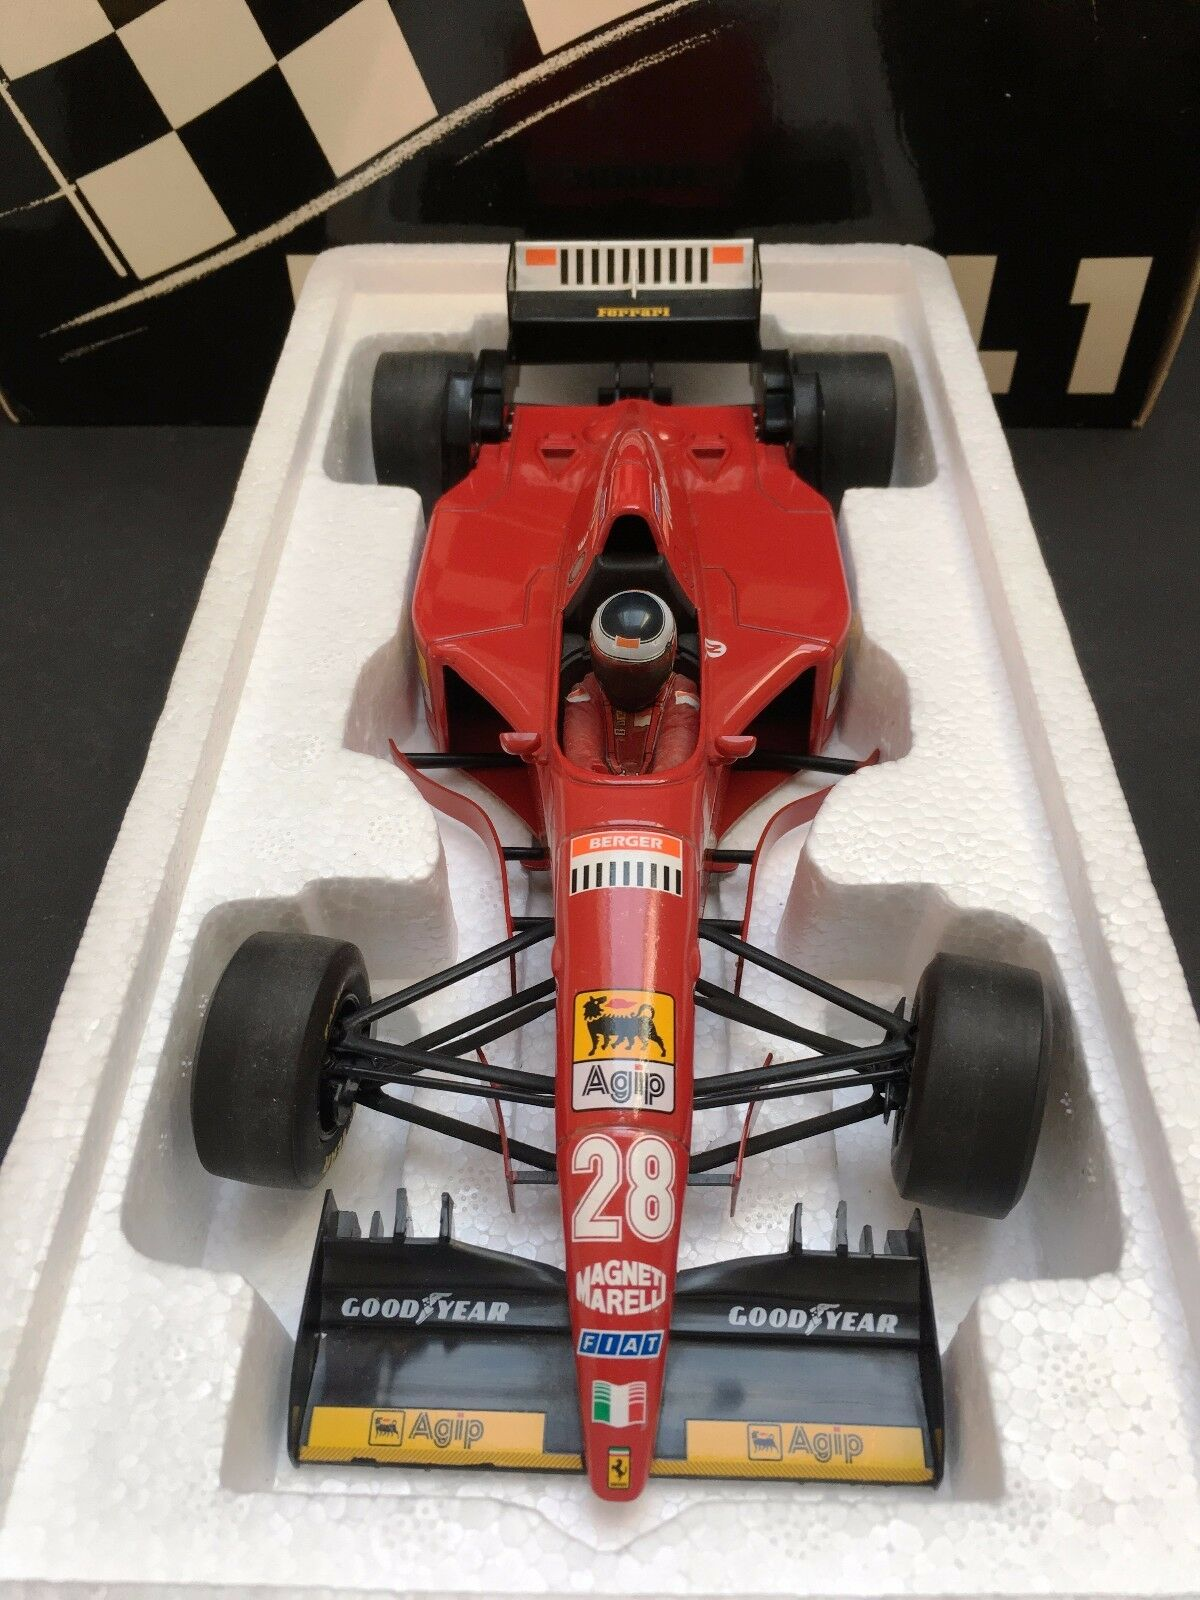 Minichamps - Gerhard Berger - Ferrari - 412T2 - 1995 - 1 18 - Closed Box - Rare